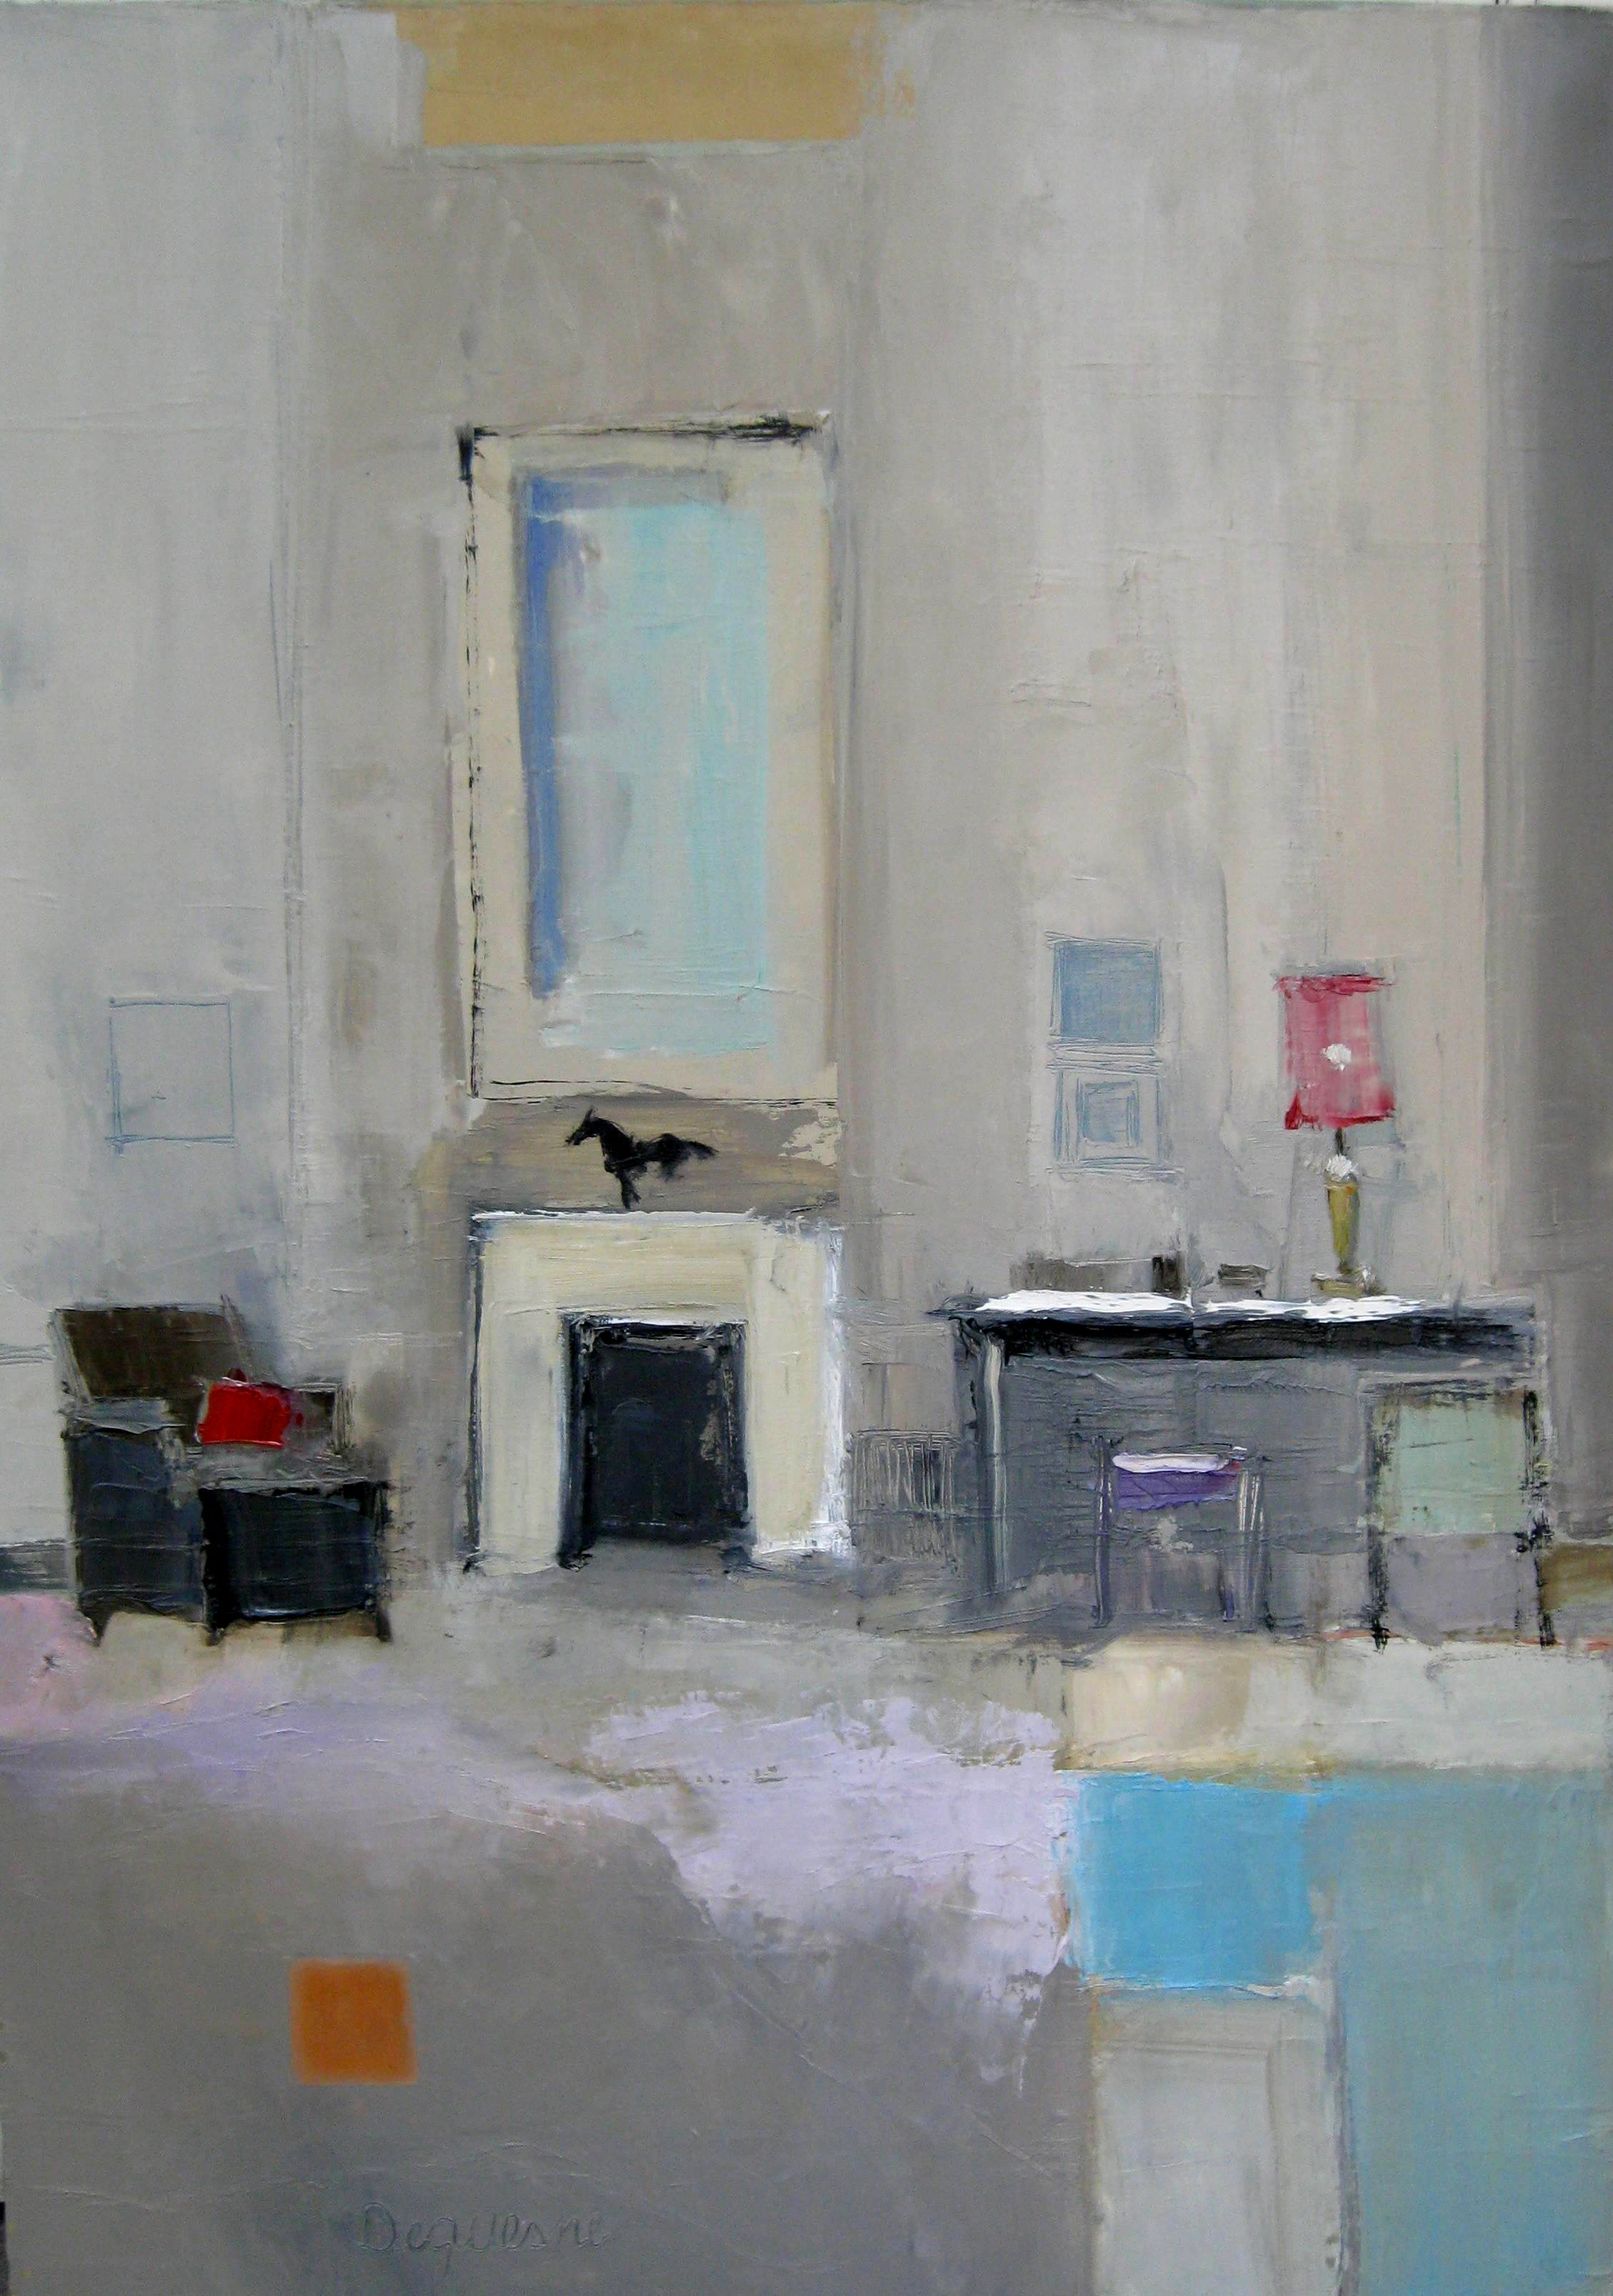 Luciana Levinton - Palais, Painting For Sale at 1stdibs